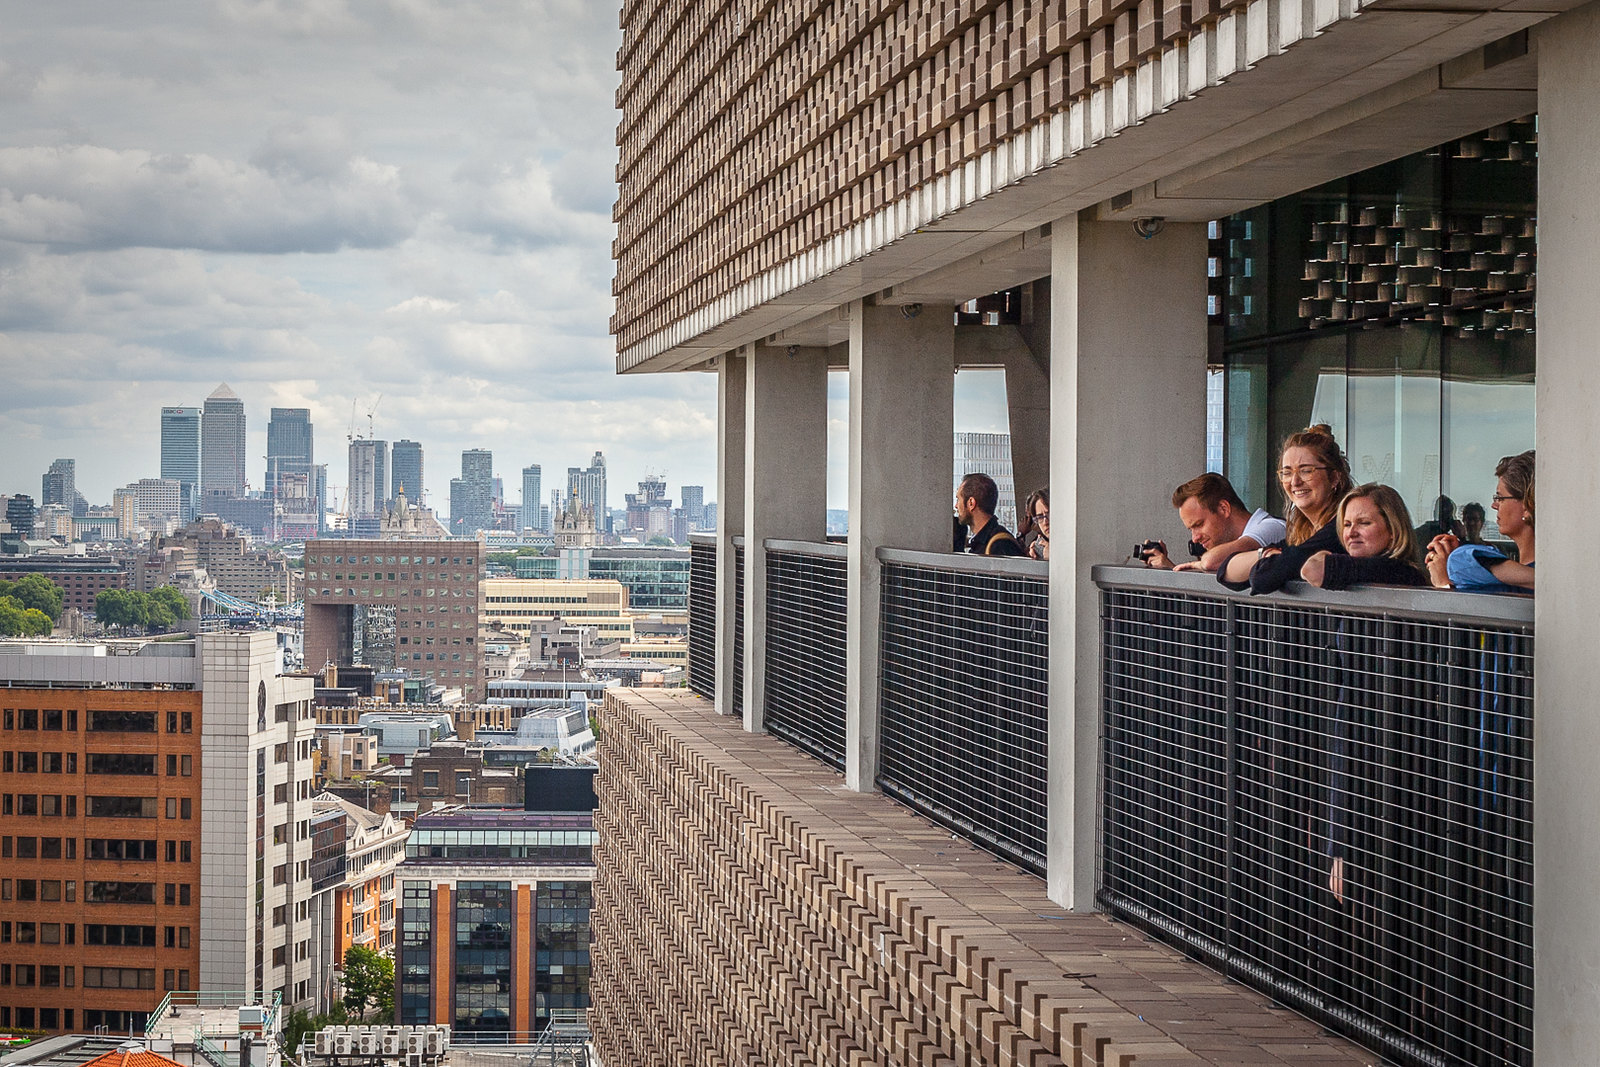 Balcony views at the Tate Modern in London, as people hang over the edge of a railing